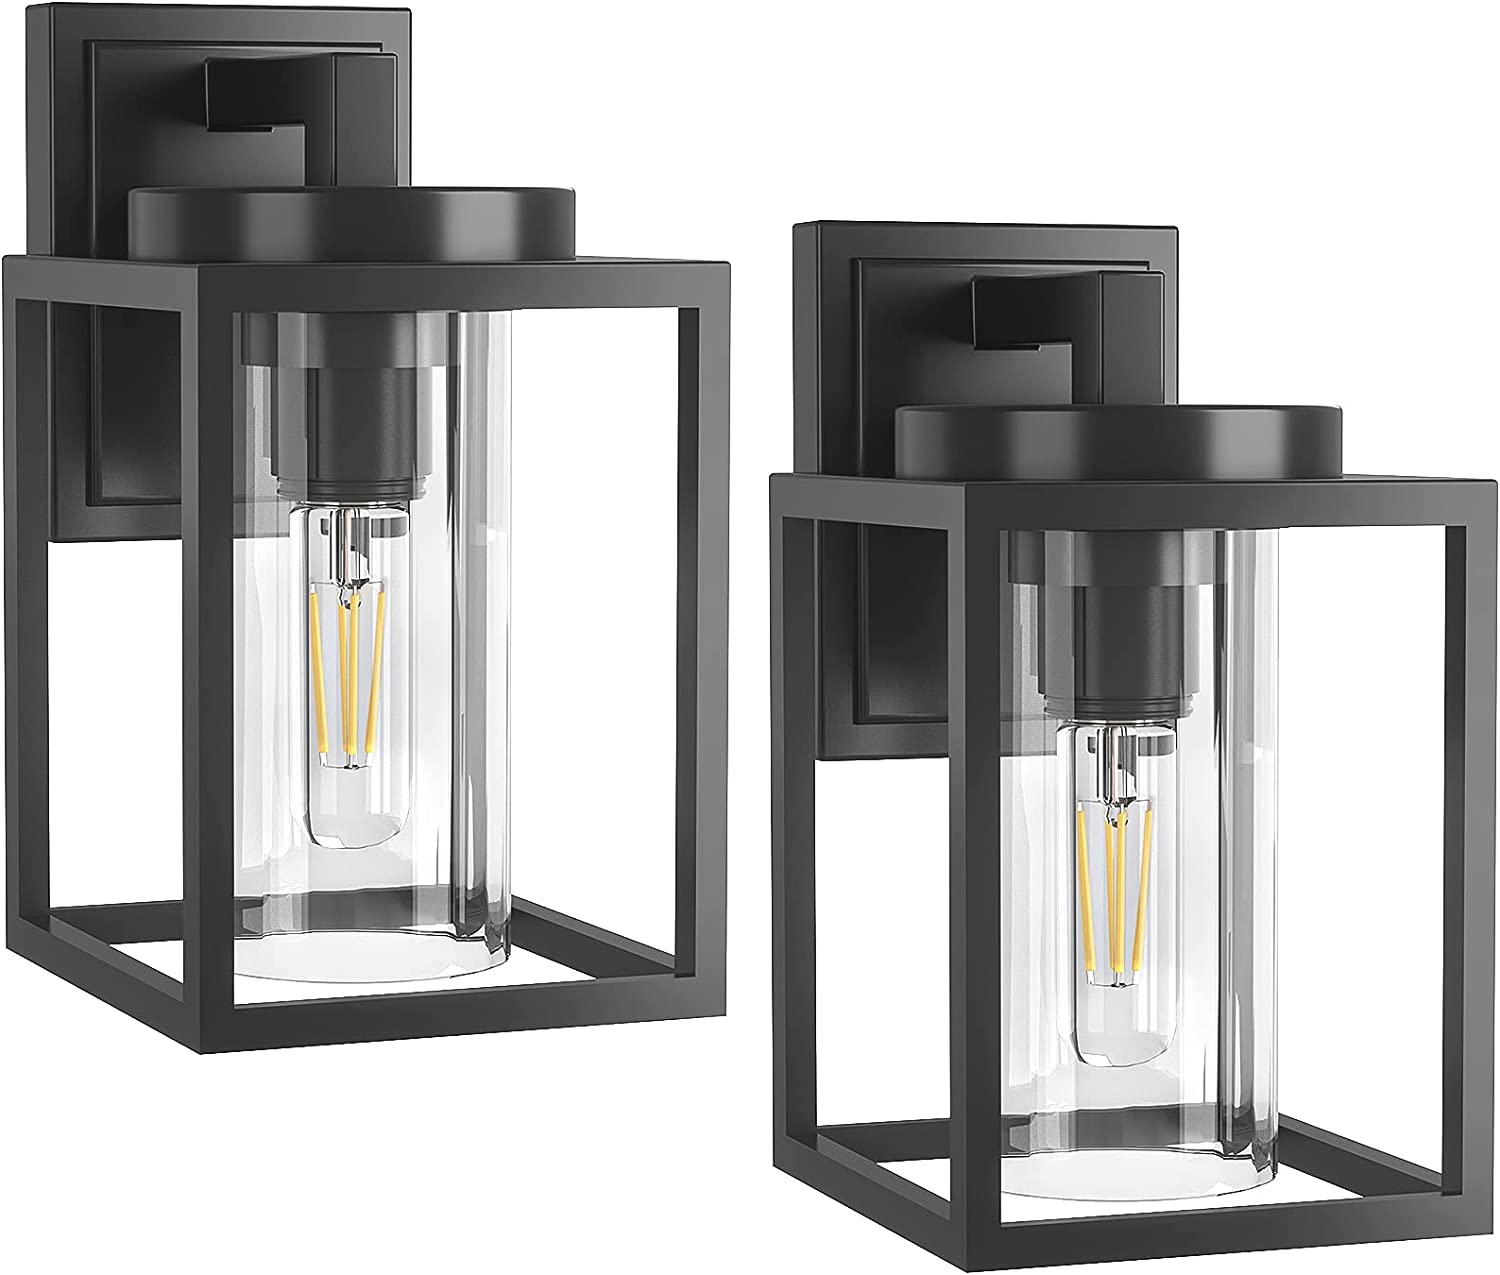 LityMax Exterior Max 59% OFF Wall Sconce Lighting Porch Outdoor Matte Black online shopping